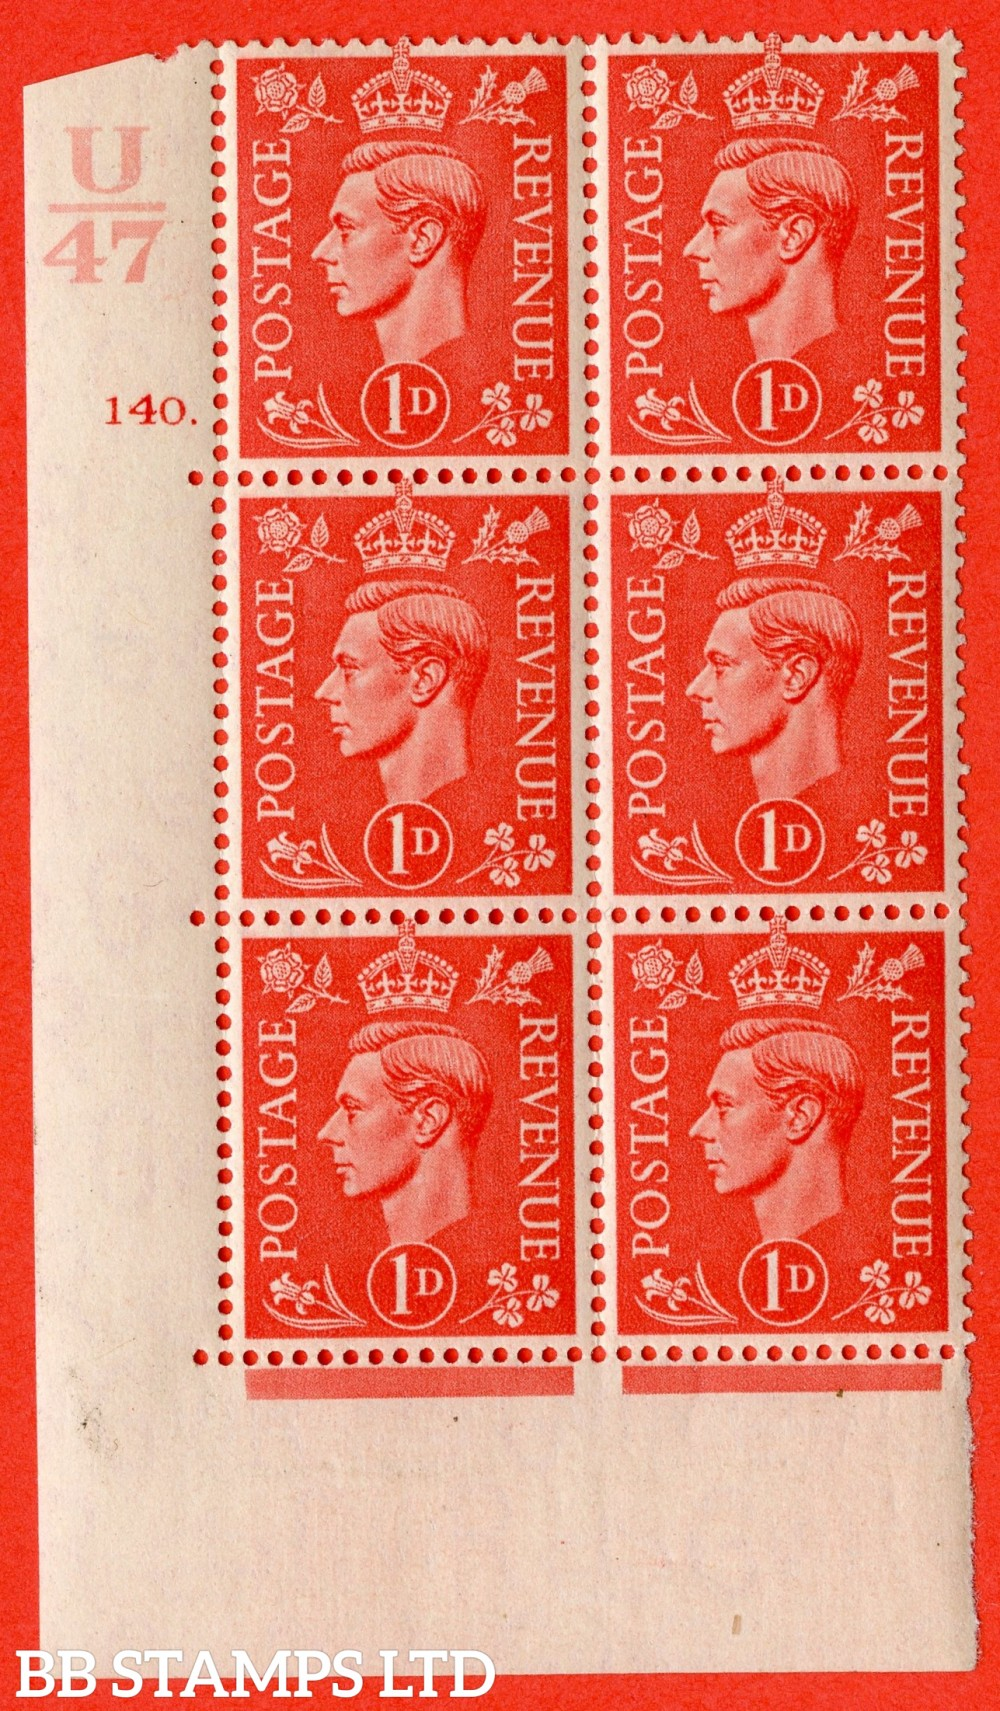 """SG. 486. Q5. 1d Pale scarlet. A fine lightly mounted mint """" Control U47  cylinder 140 dot """" control block of 6 with perf type 5 E/I."""